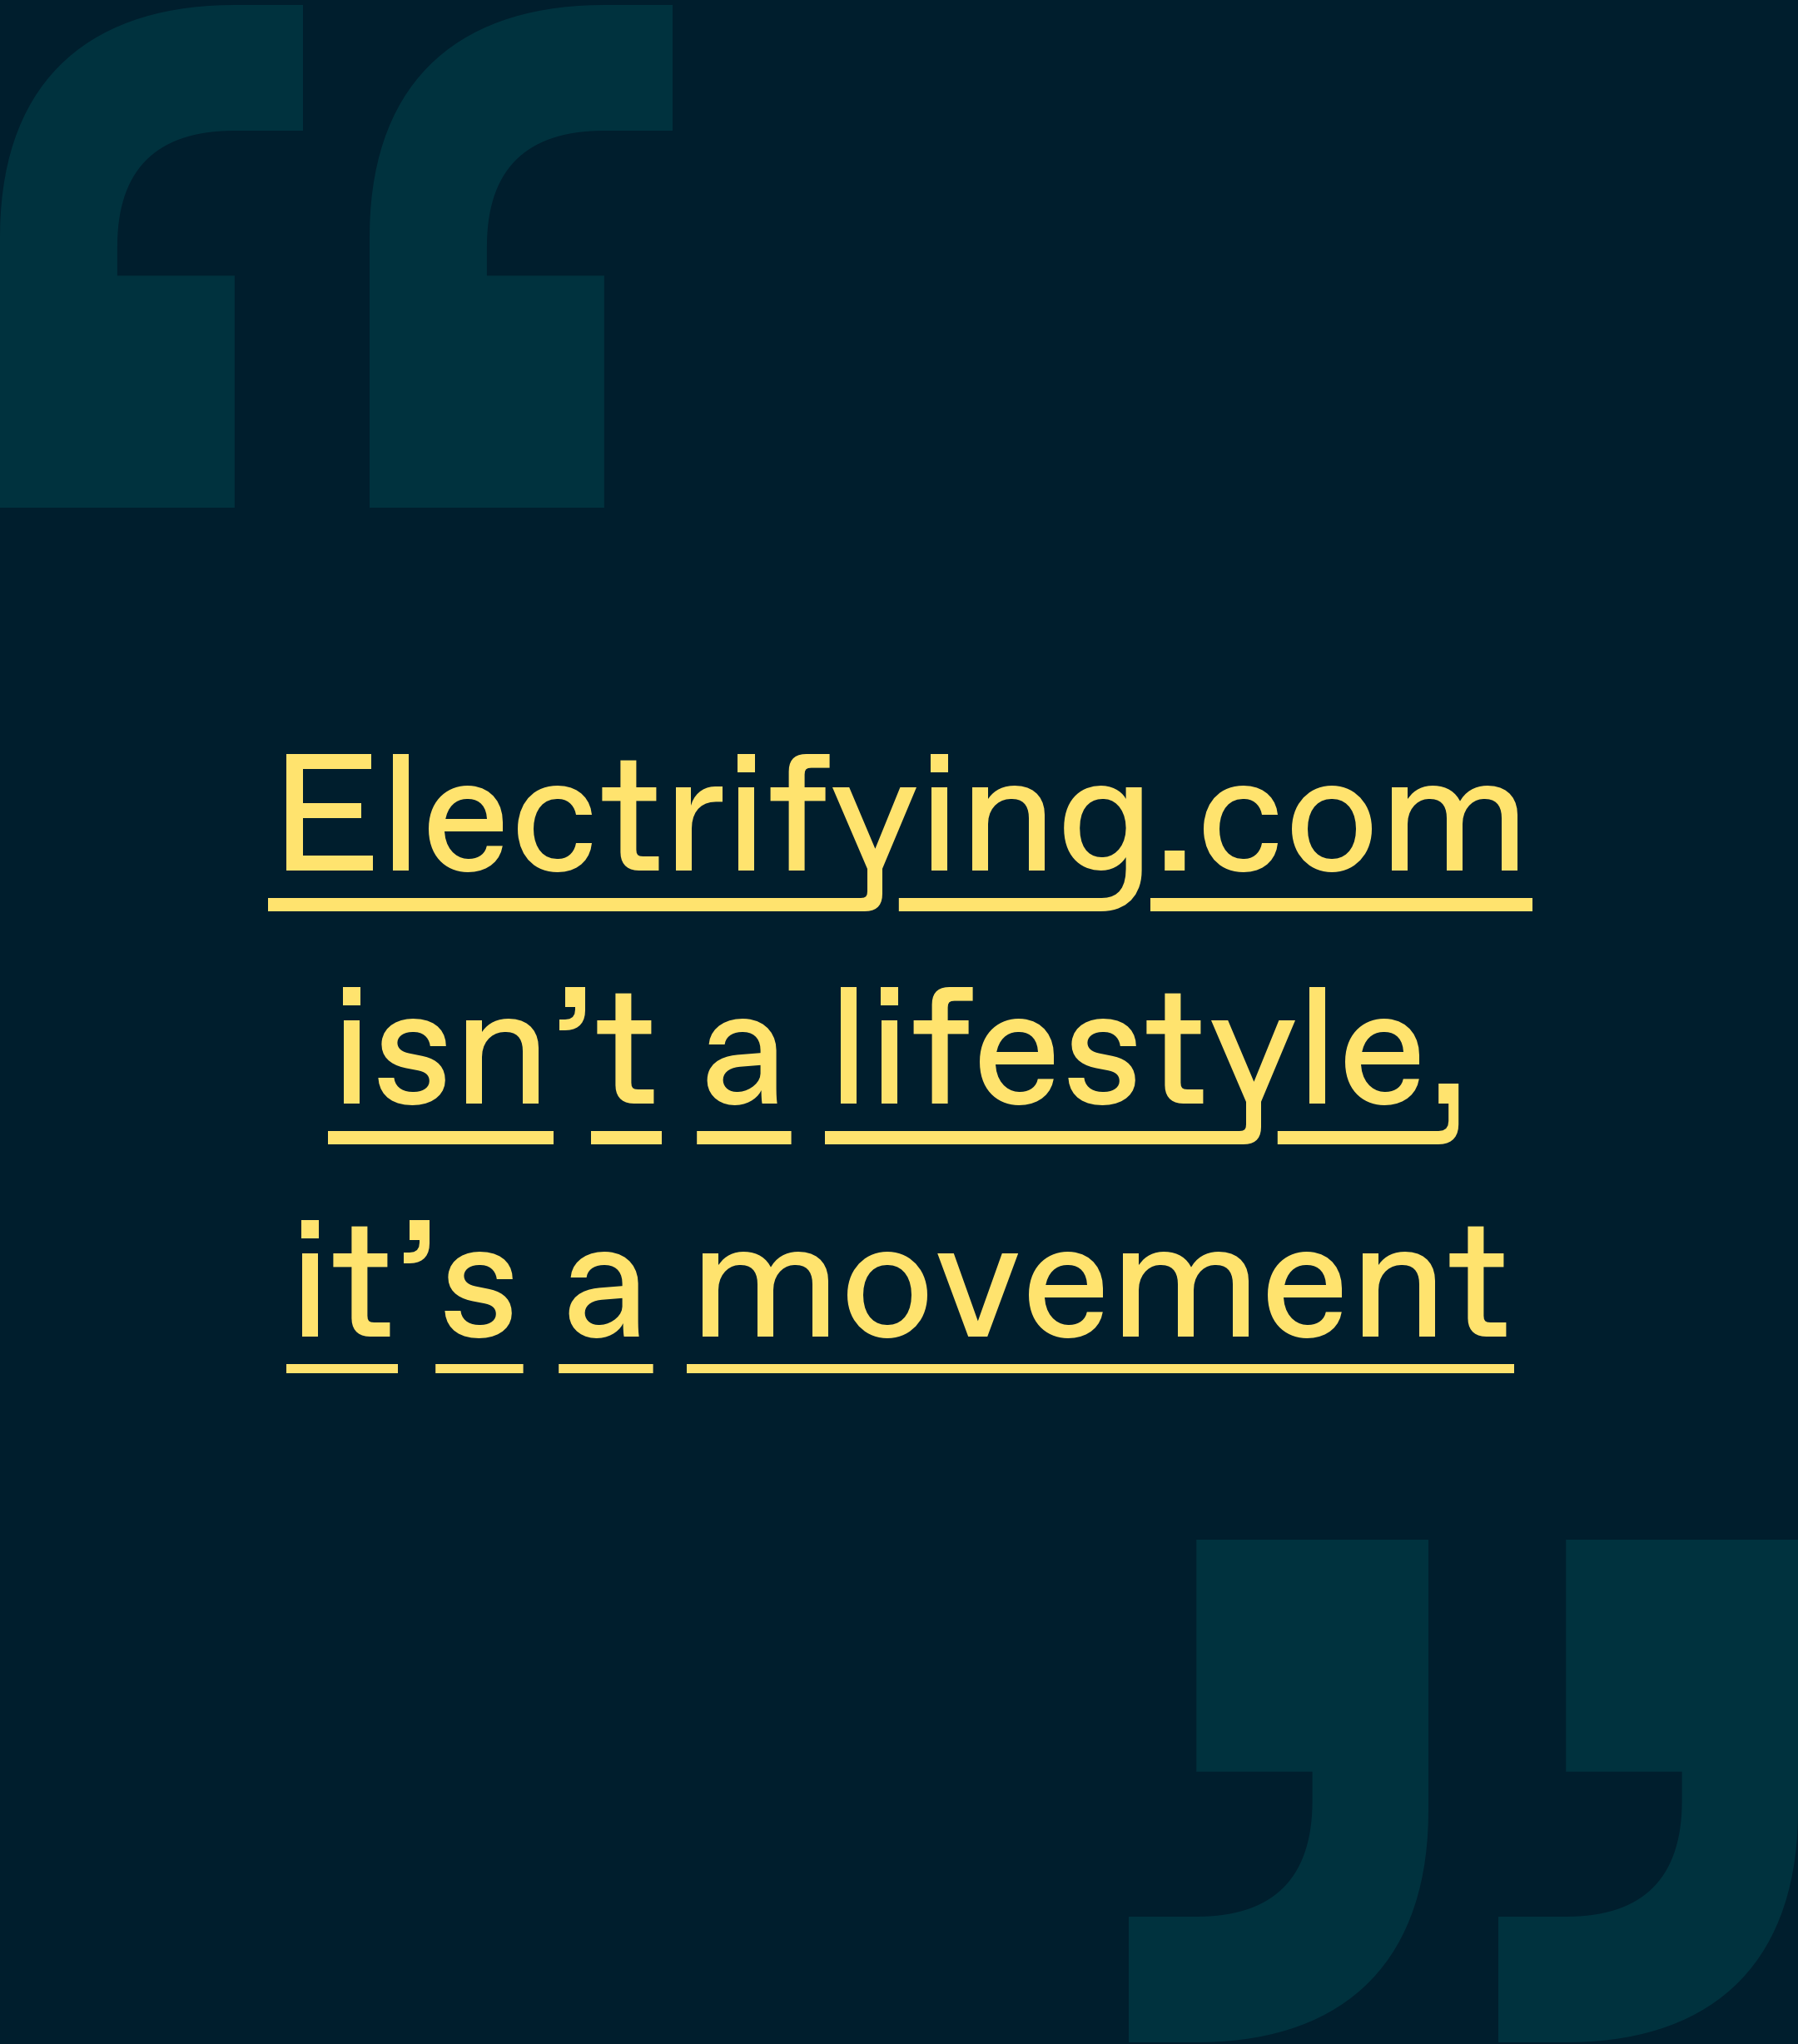 Electryfing company banner with short slogan